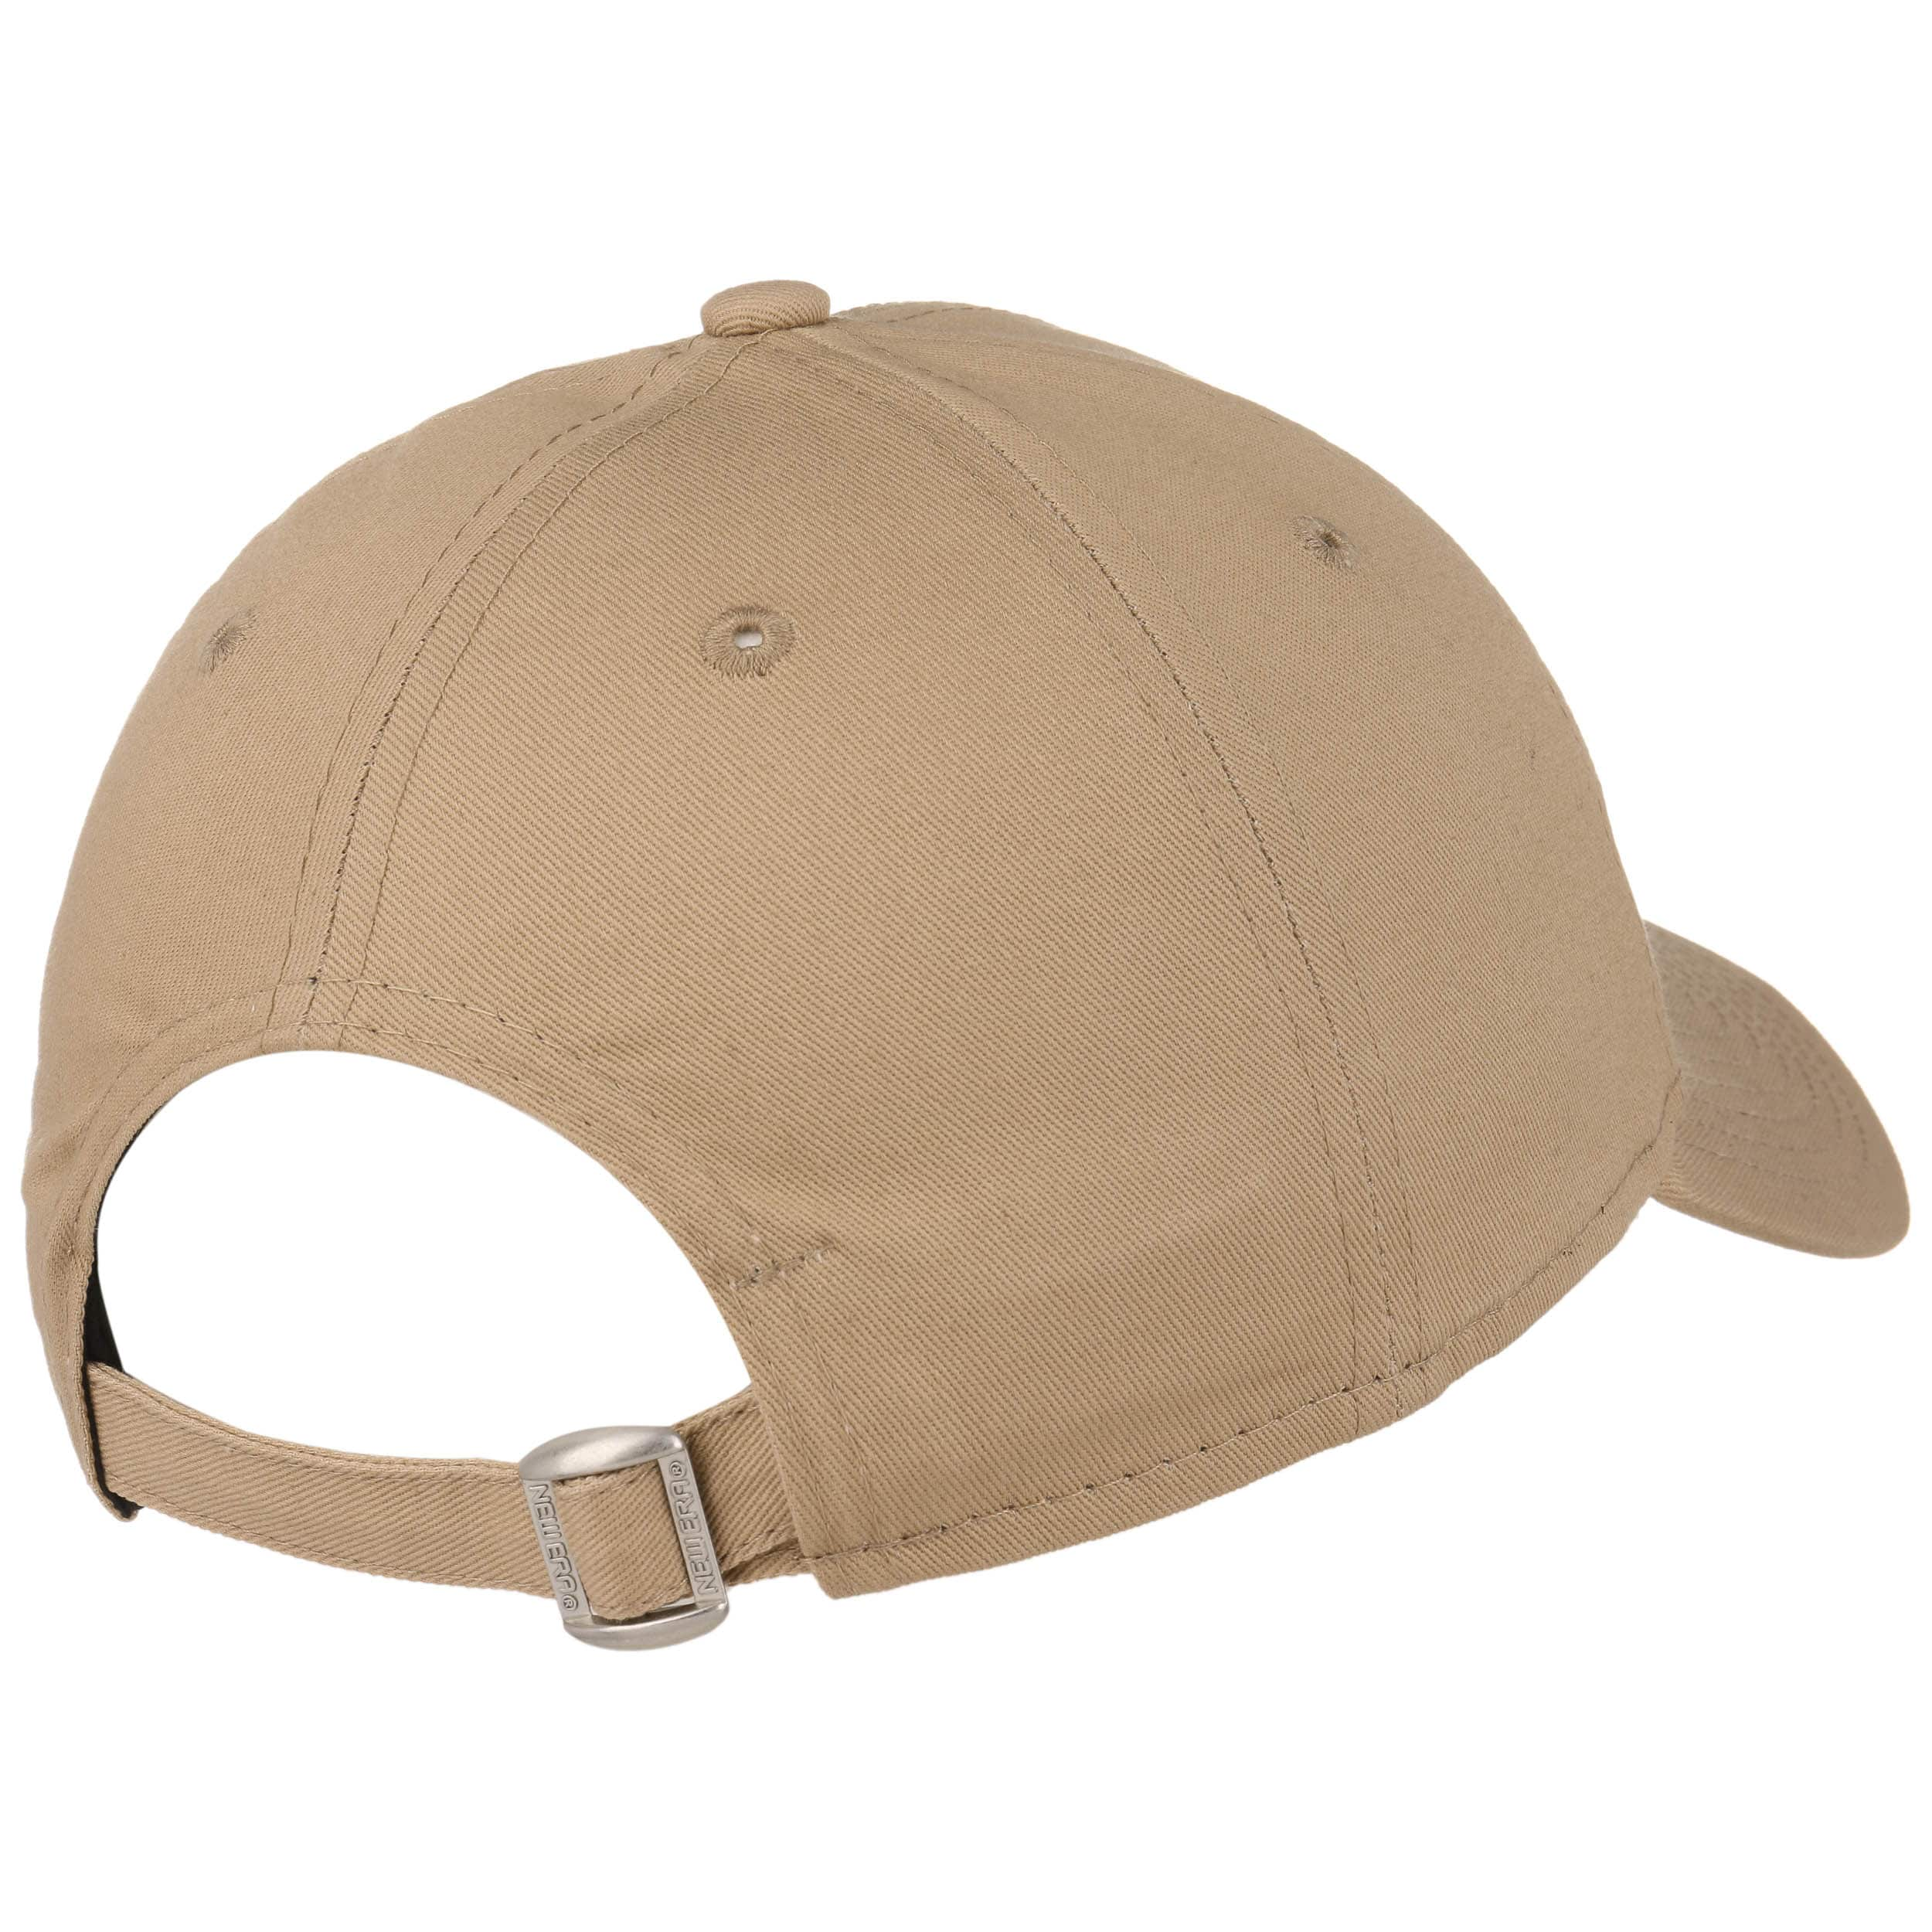 ... aliexpress 9forty womens ess dodgers cap by new era beige 3 b119b 1a562 4e7775692c22